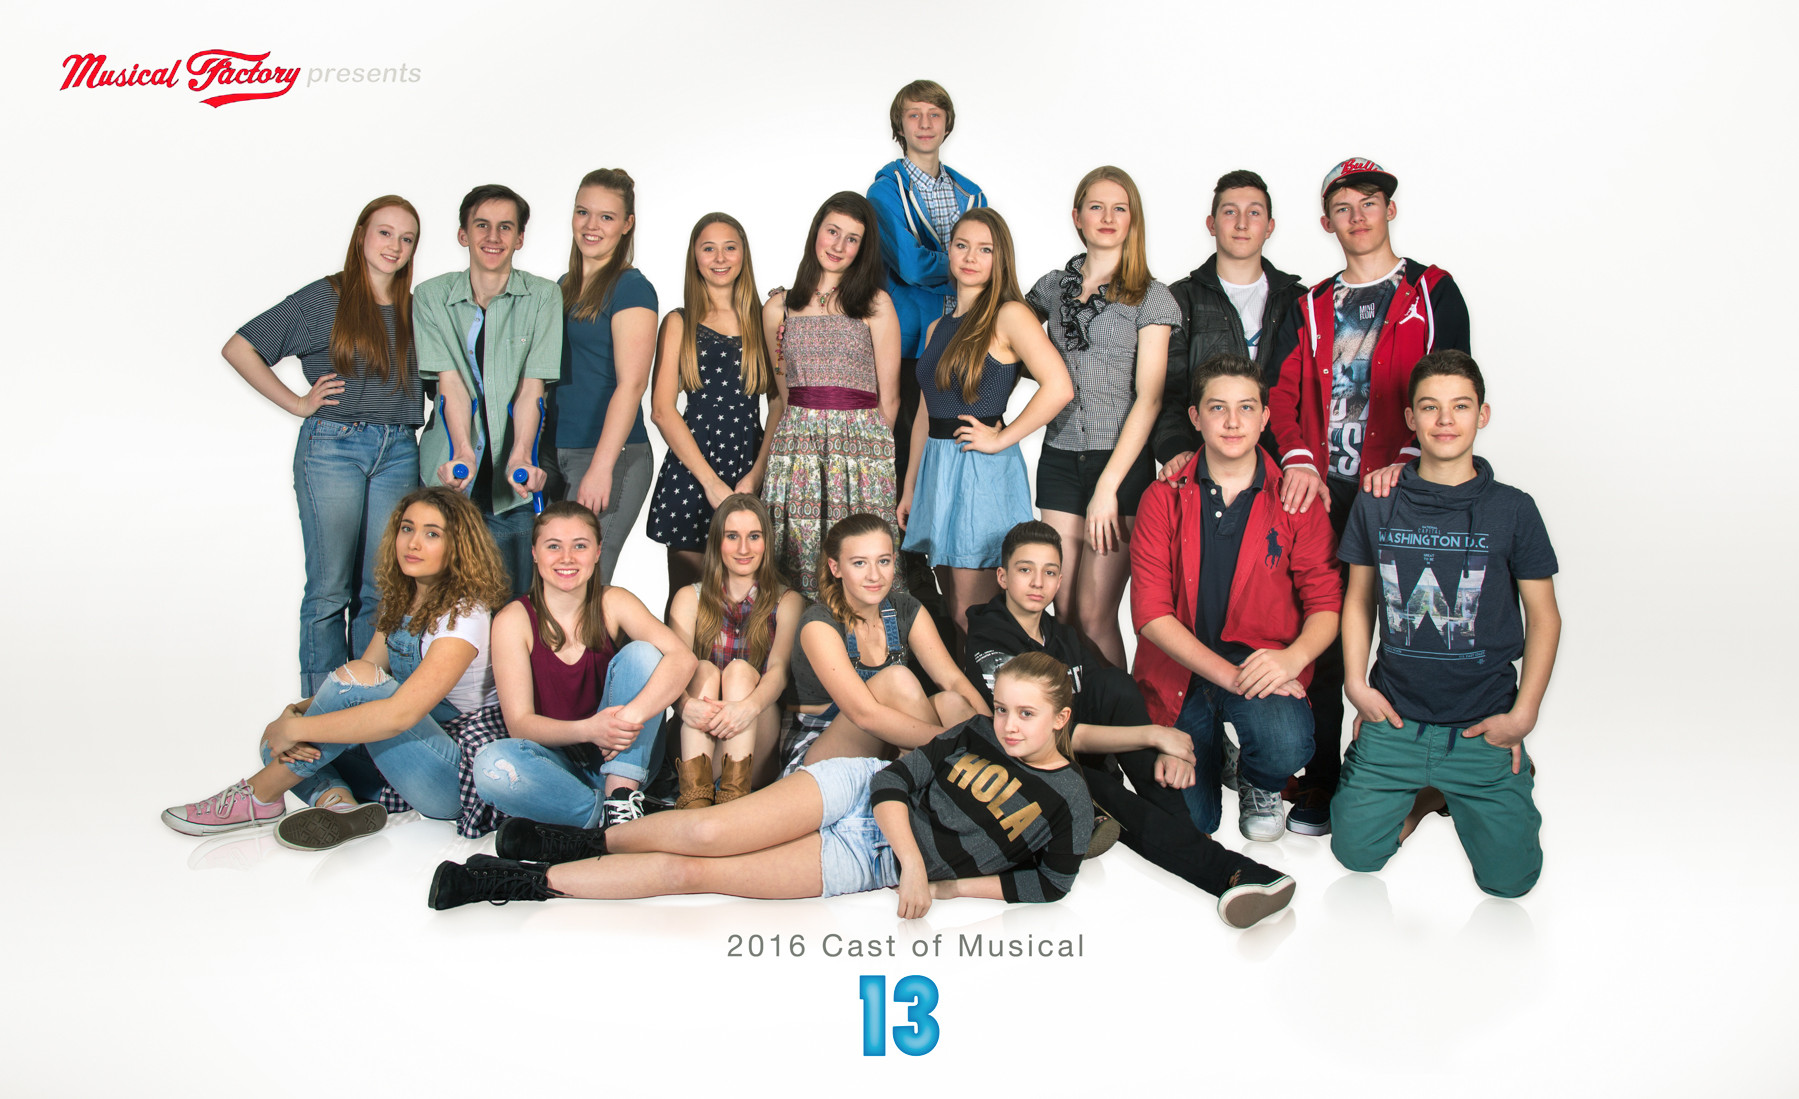 2016 Cast Photo of the Cast of the Musical 13 presented by Musical Factory Lucerne, Switzerland